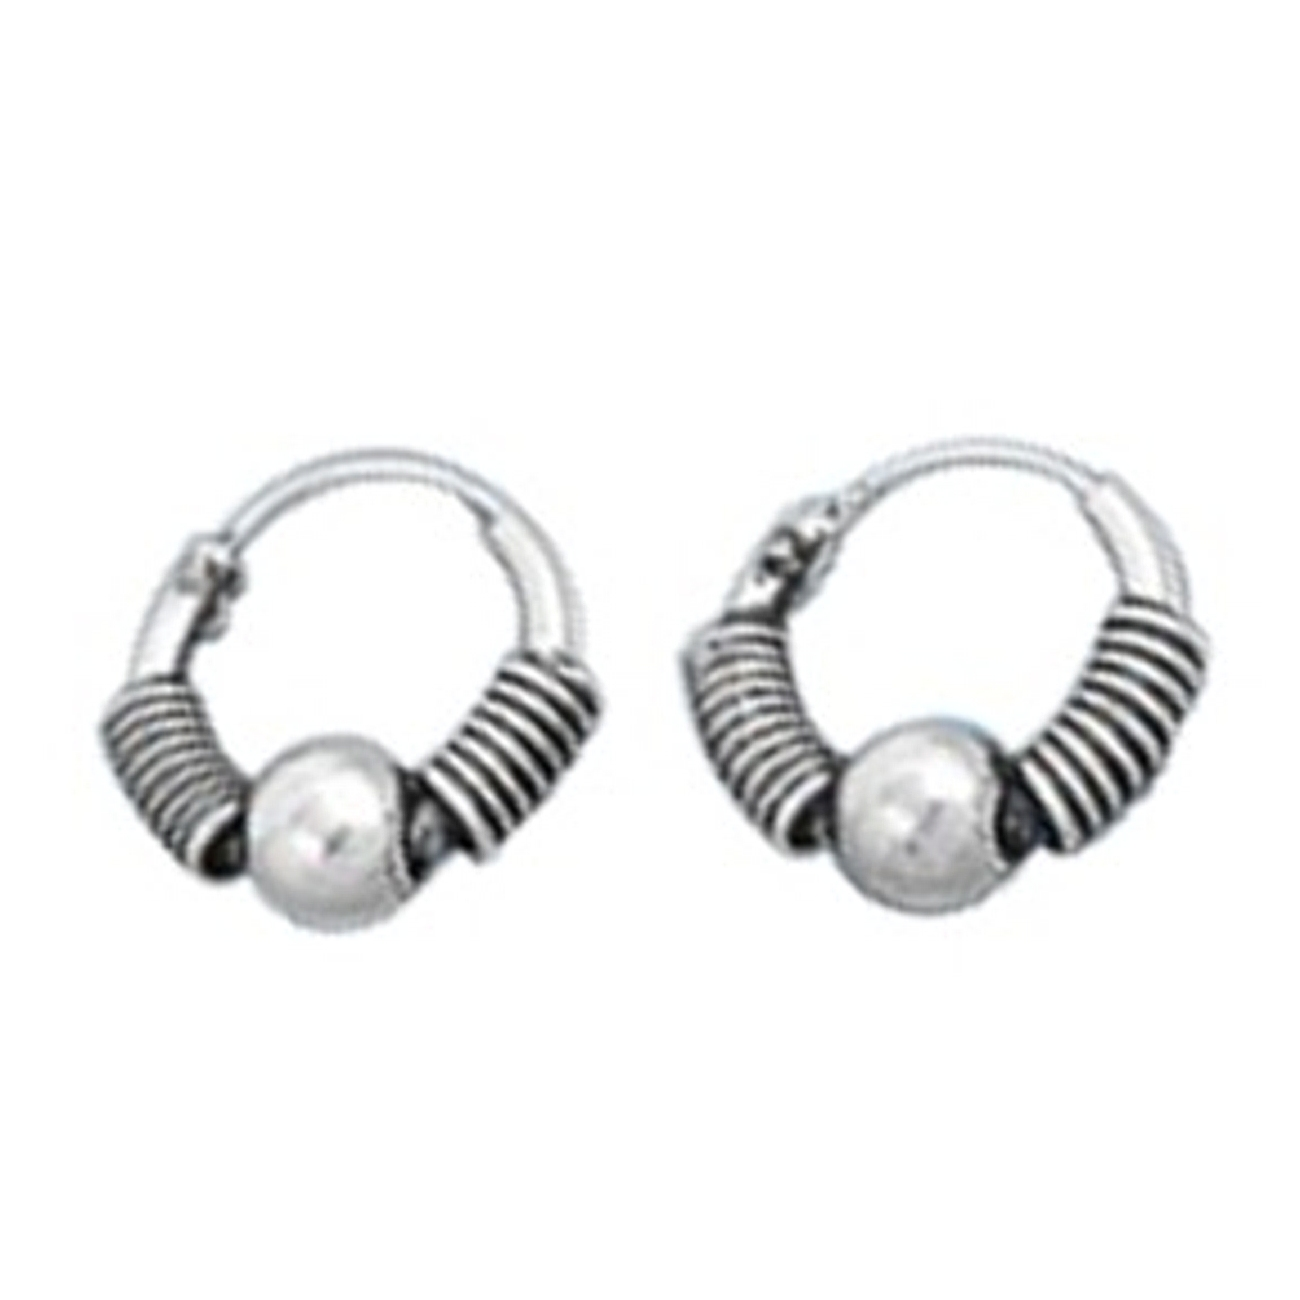 "10mm (13/32"") Tight Wrap Wire Ball Charm Tubular Endless Hoop Earrings"